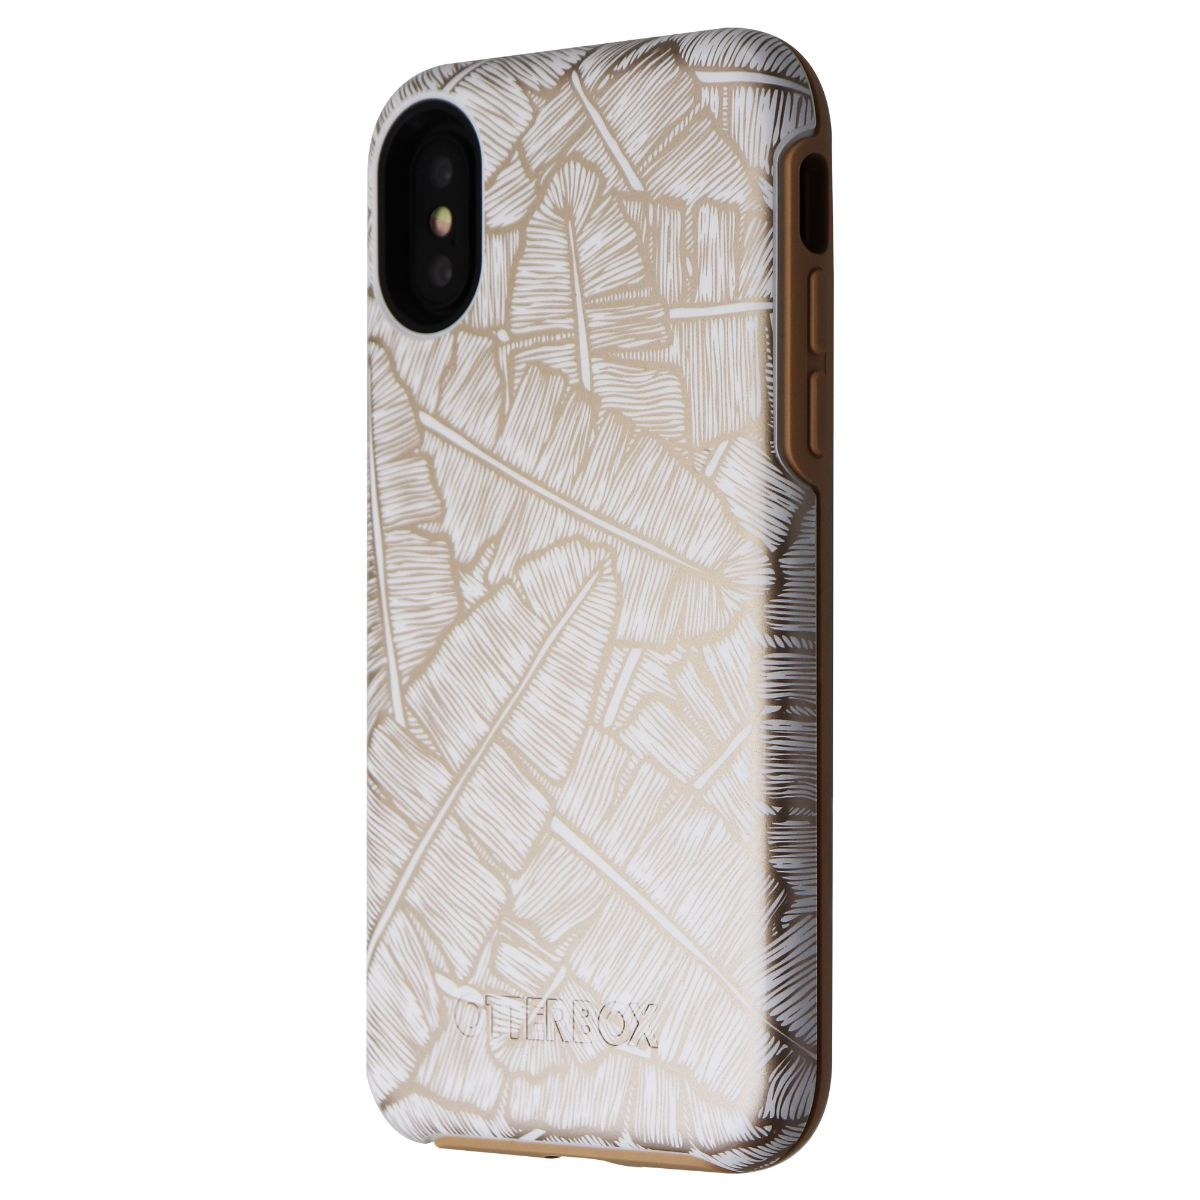 OtterBox Symmetry Case for iPhone XS / X - Throwing Shade (White/Tan Leaves)